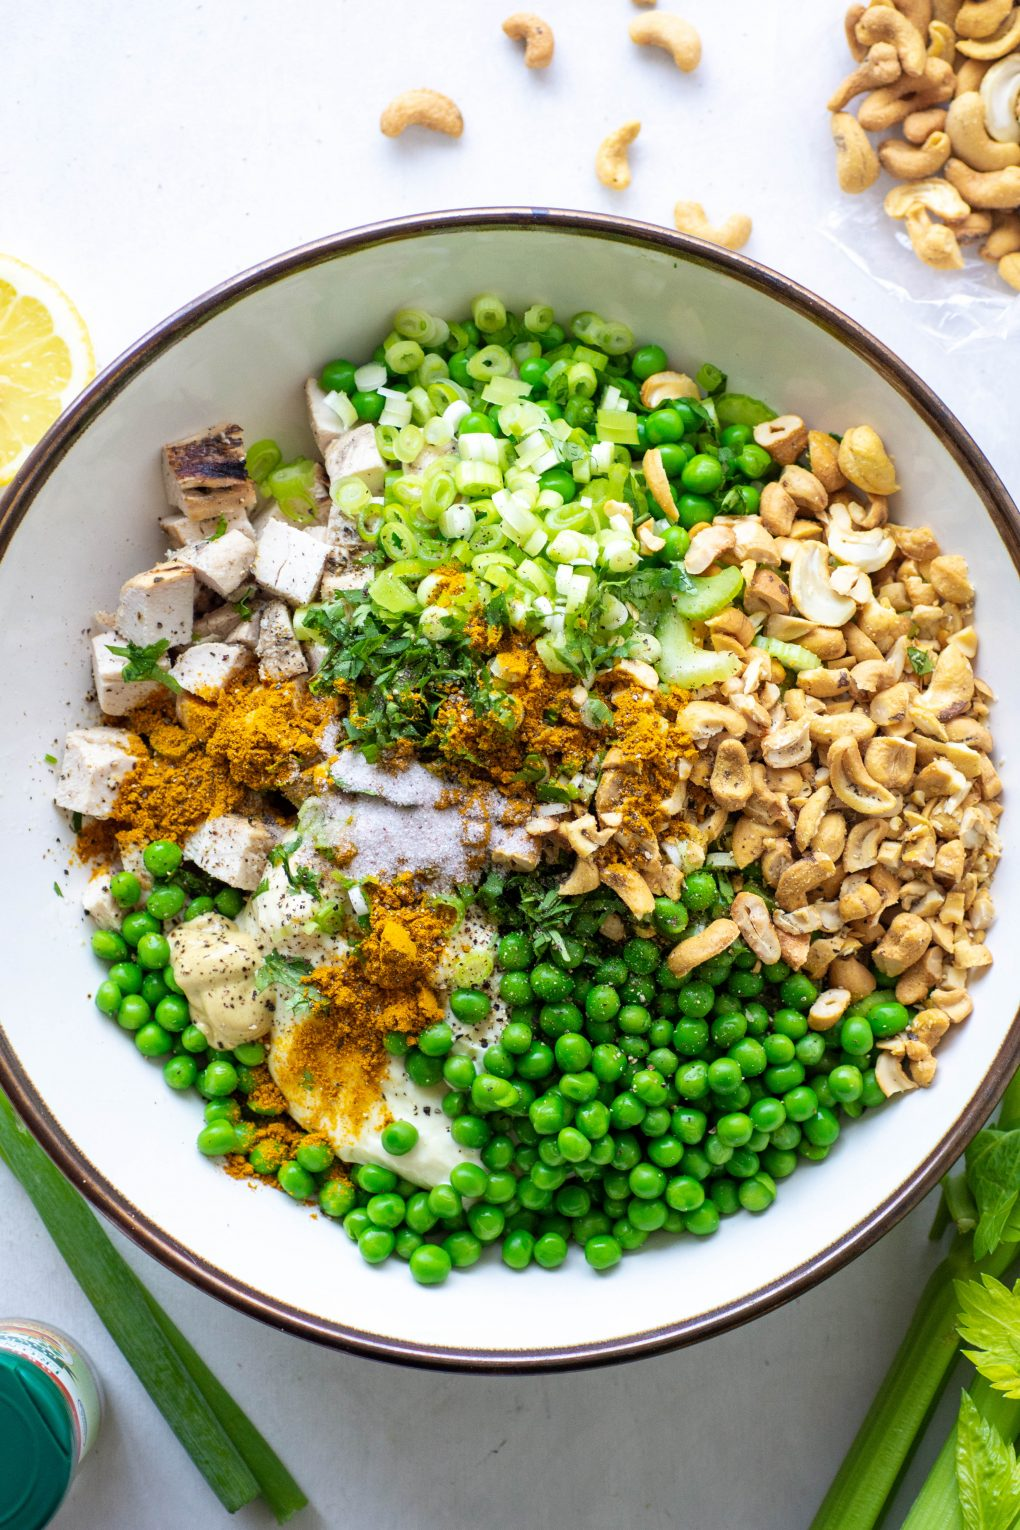 Overhead view of a bowl filled with curried chicken salad ingredients - chopped chicken, green peas, celery, green onions, cashews, mayo, and spices.